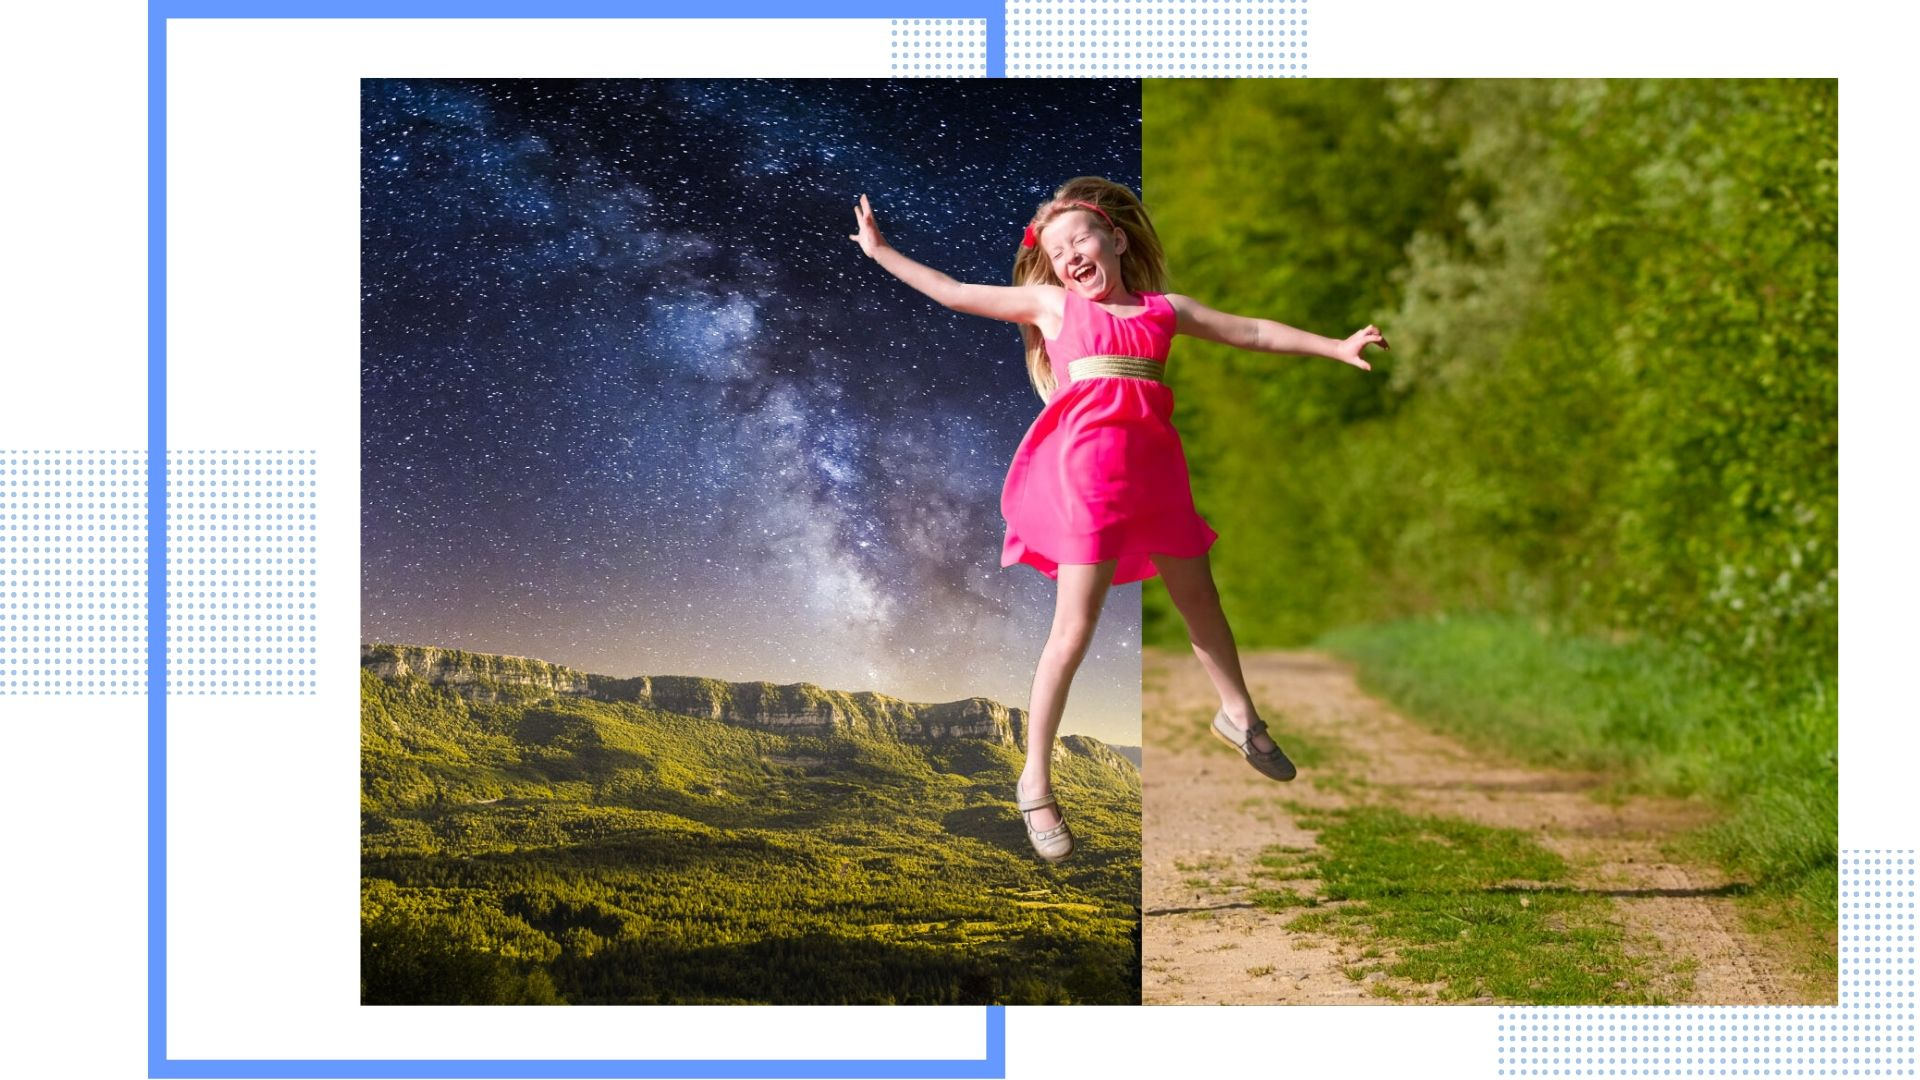 Teleporting to anywhere you want by creating transparent background image.